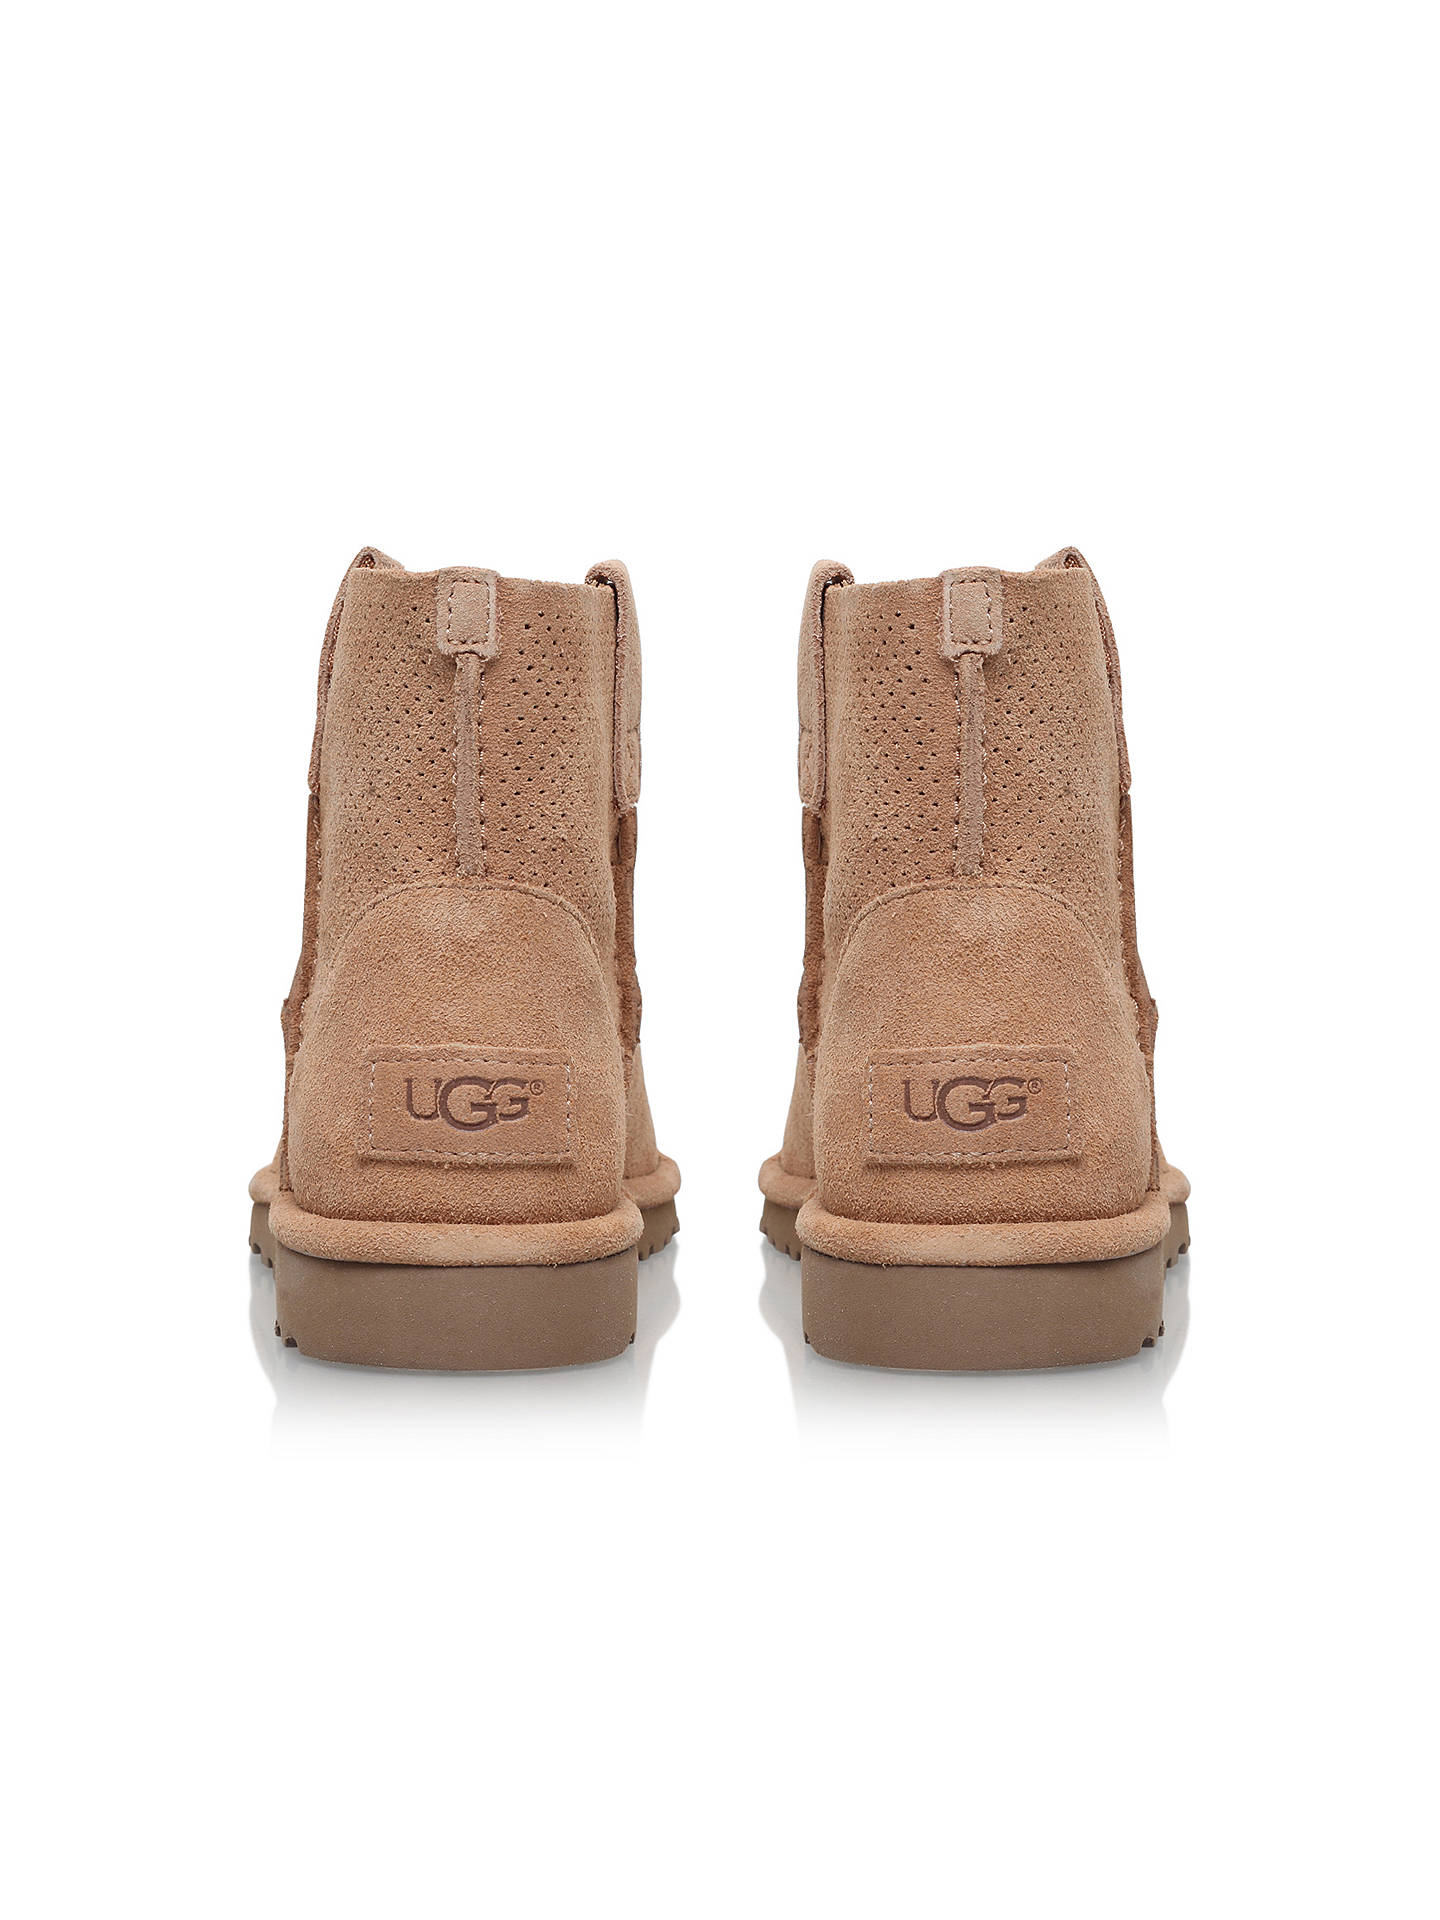 20e64bde5d8 UGG Classic Mini Perf Ankle Boots at John Lewis & Partners